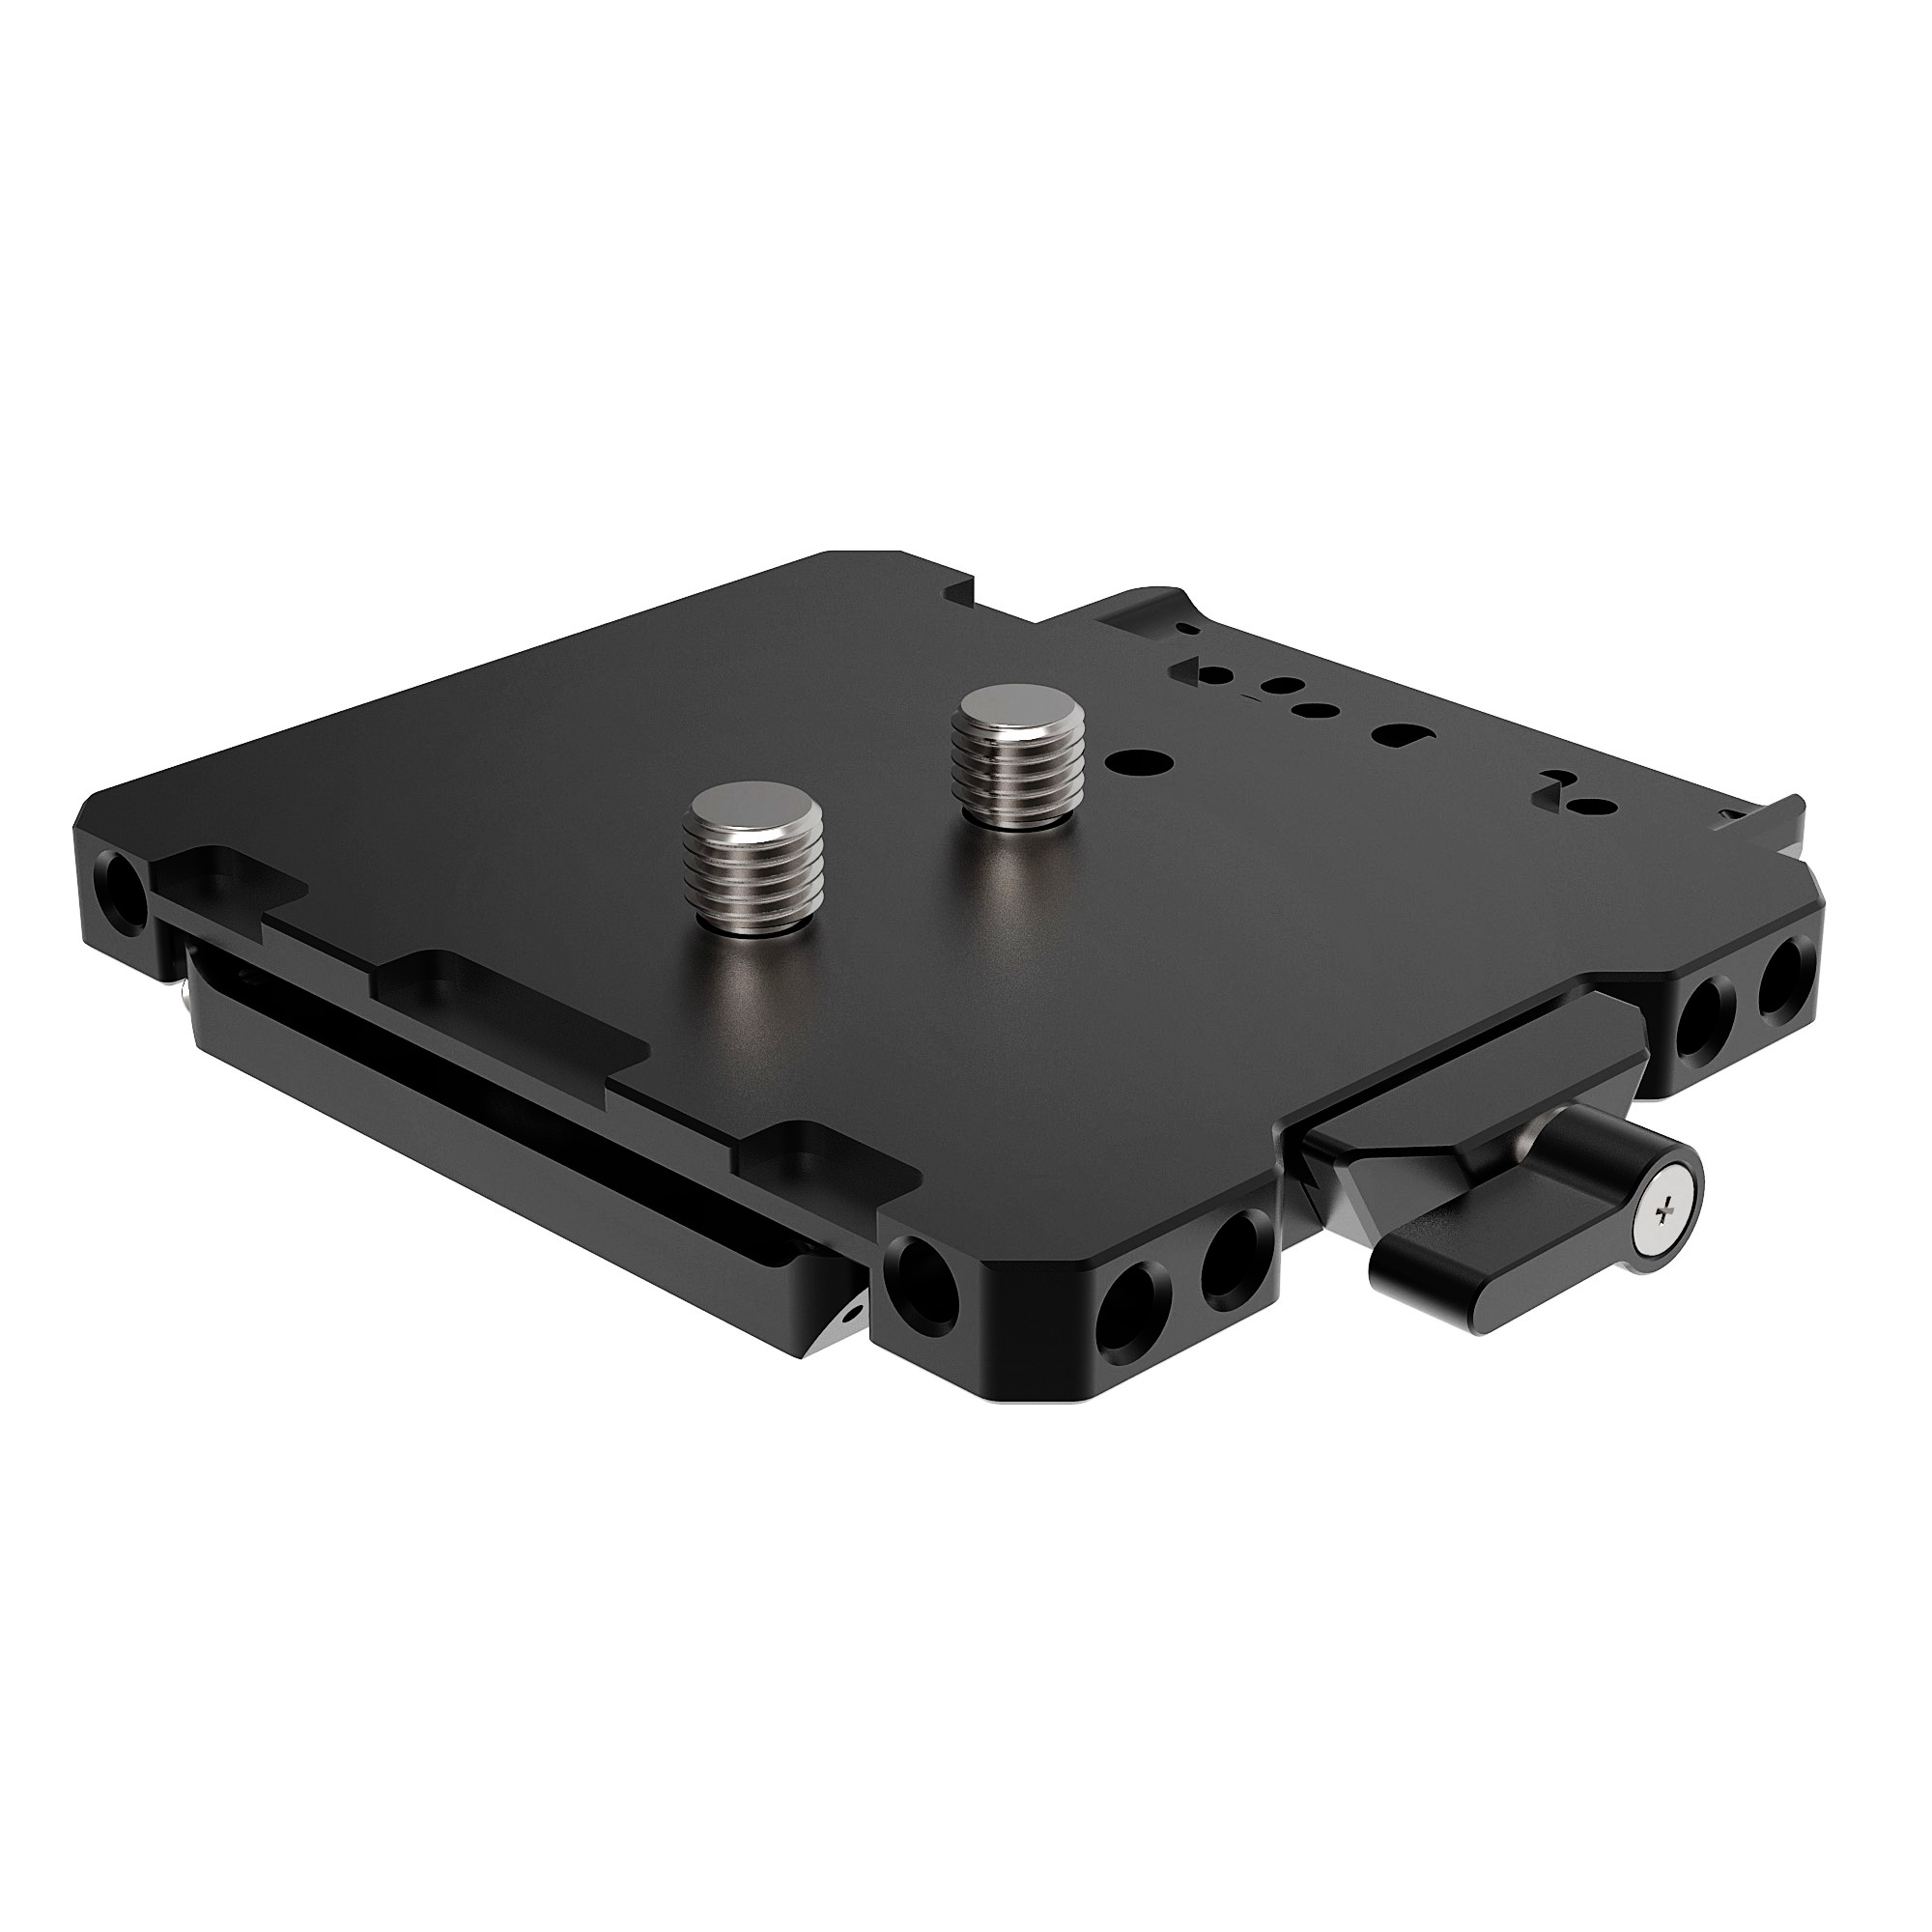 B4002 0001 Left Field Baseplate for DSMC2 2 1